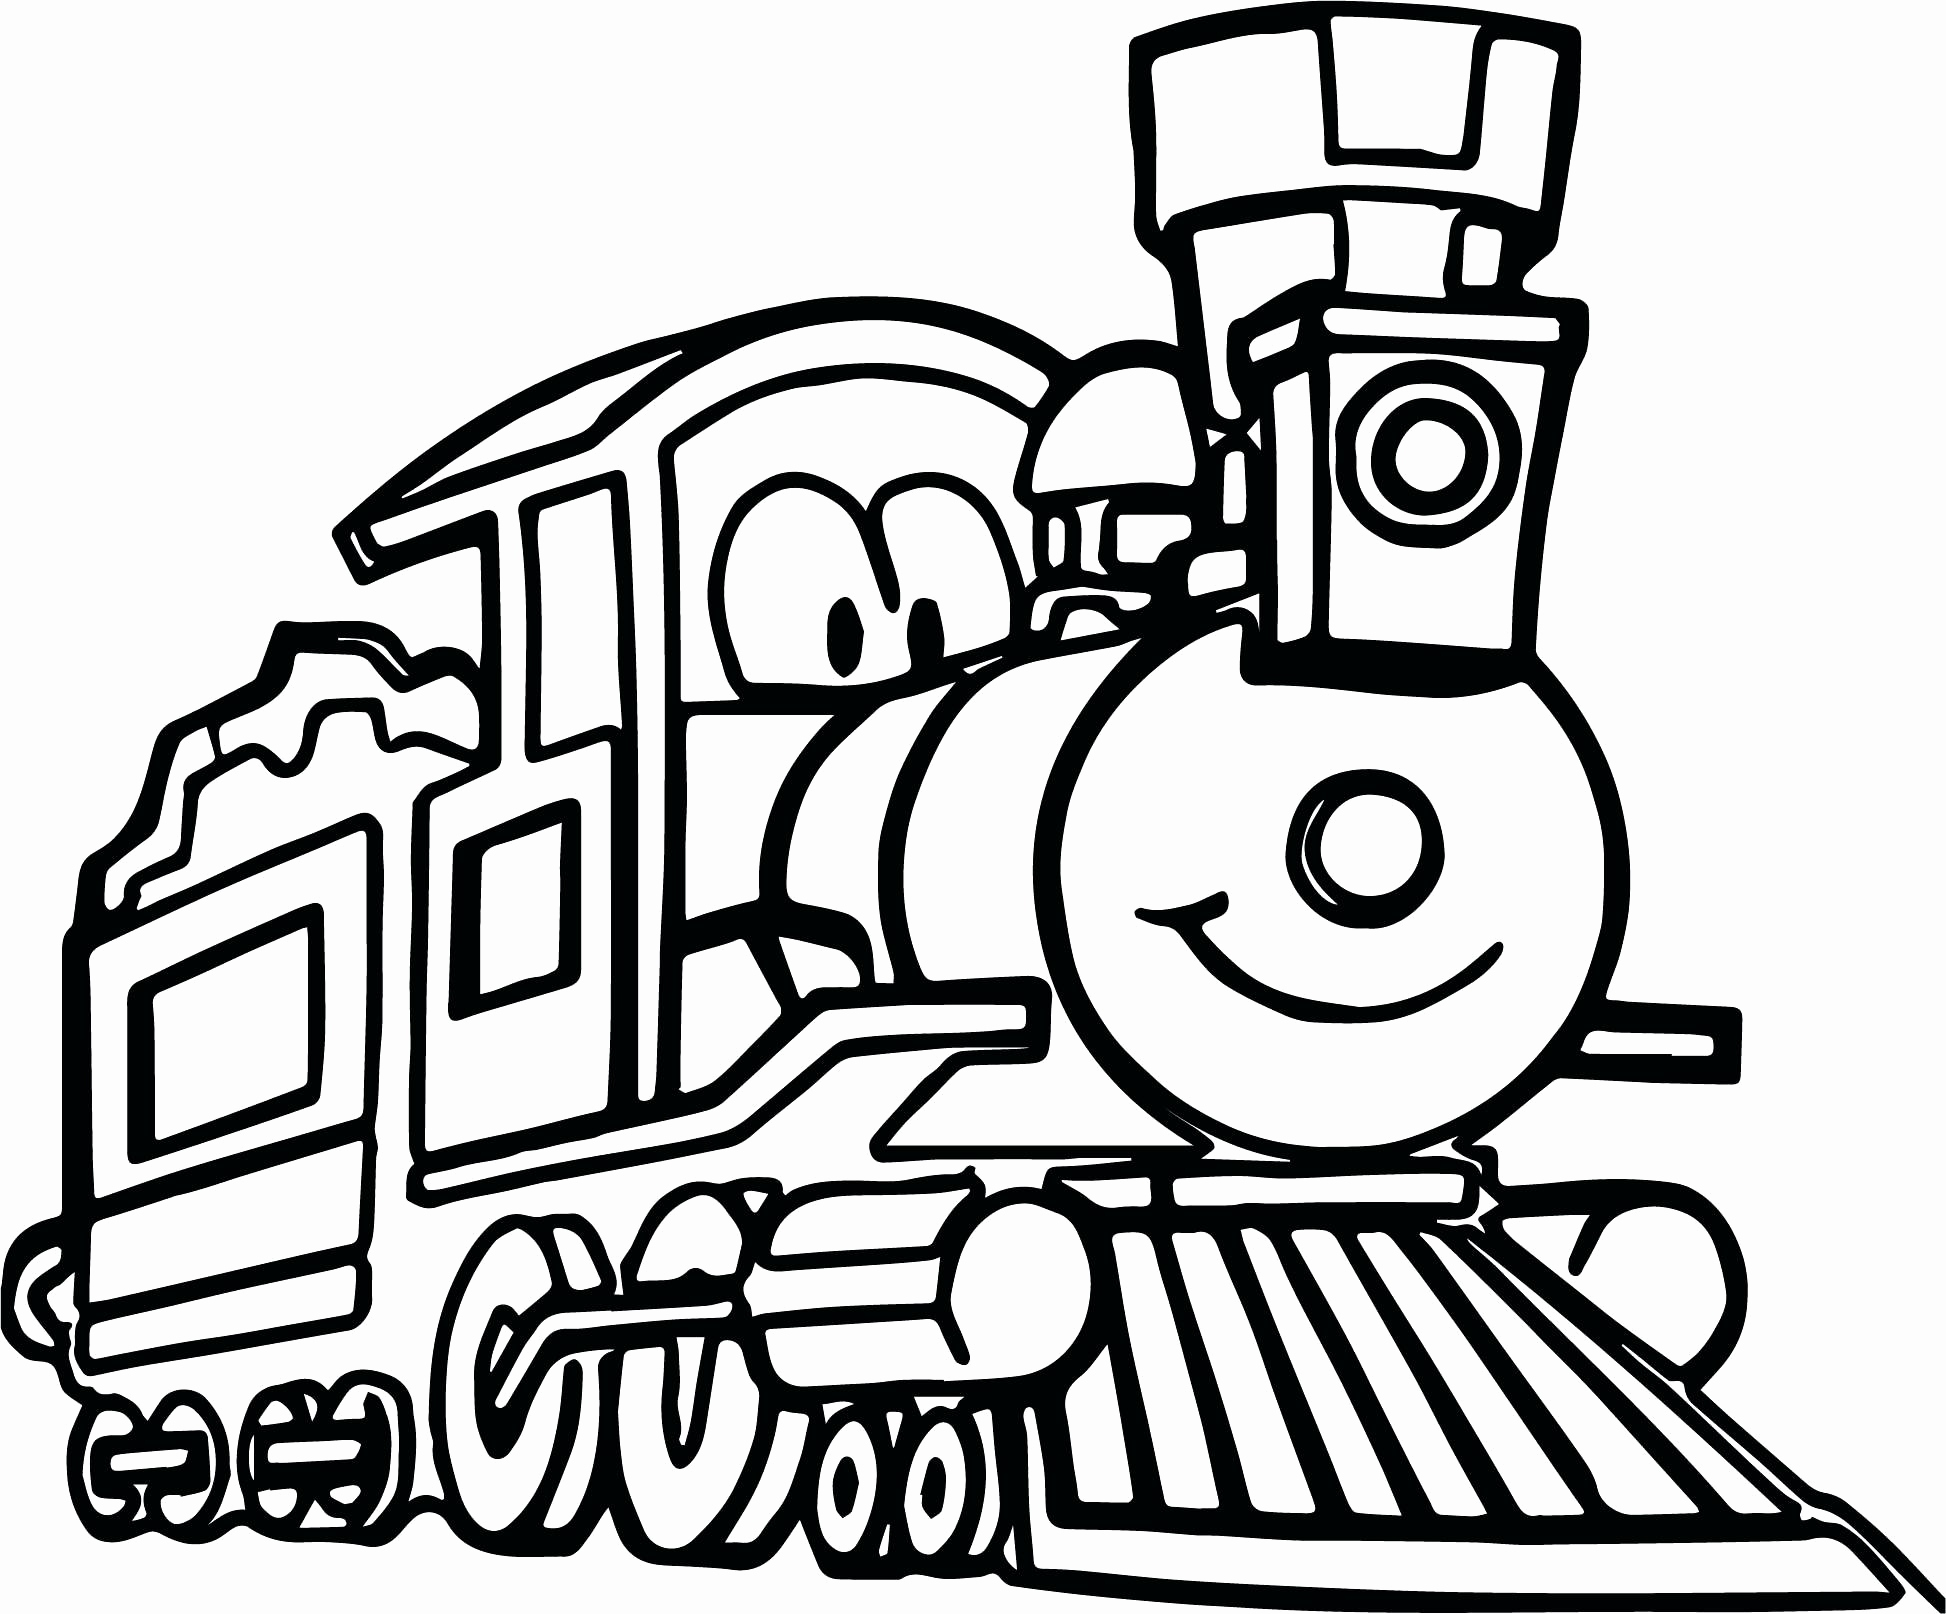 coloring train thomas the train coloring pages nature seasons coloring train